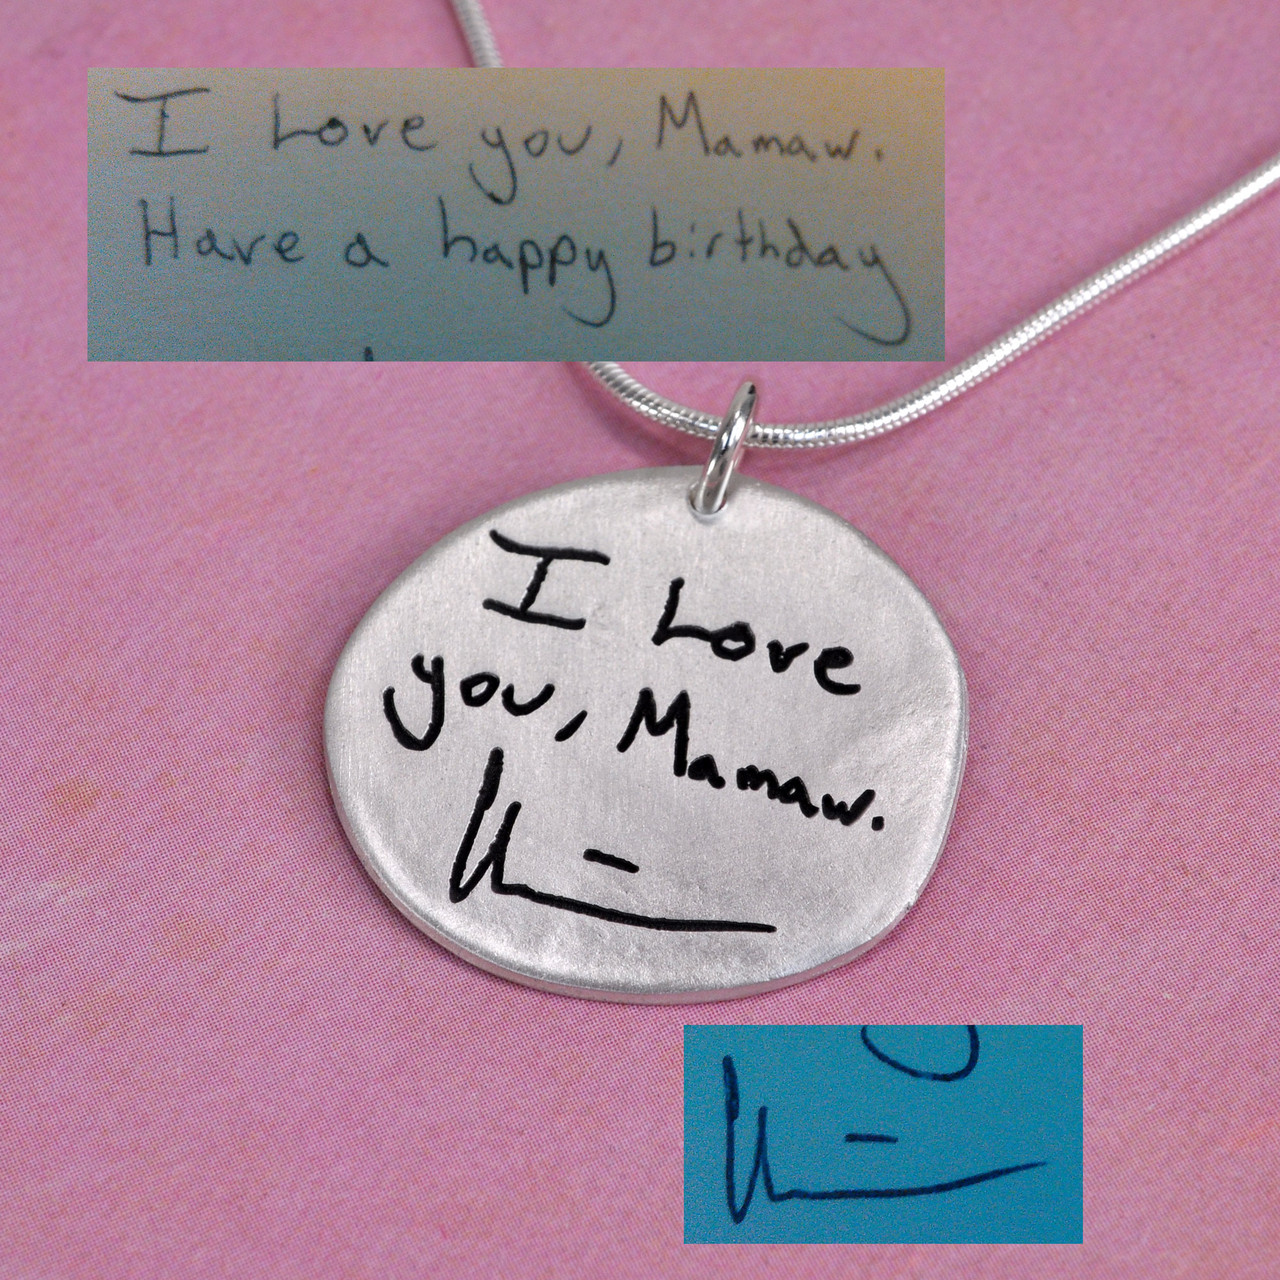 Memorial gift note on necklace